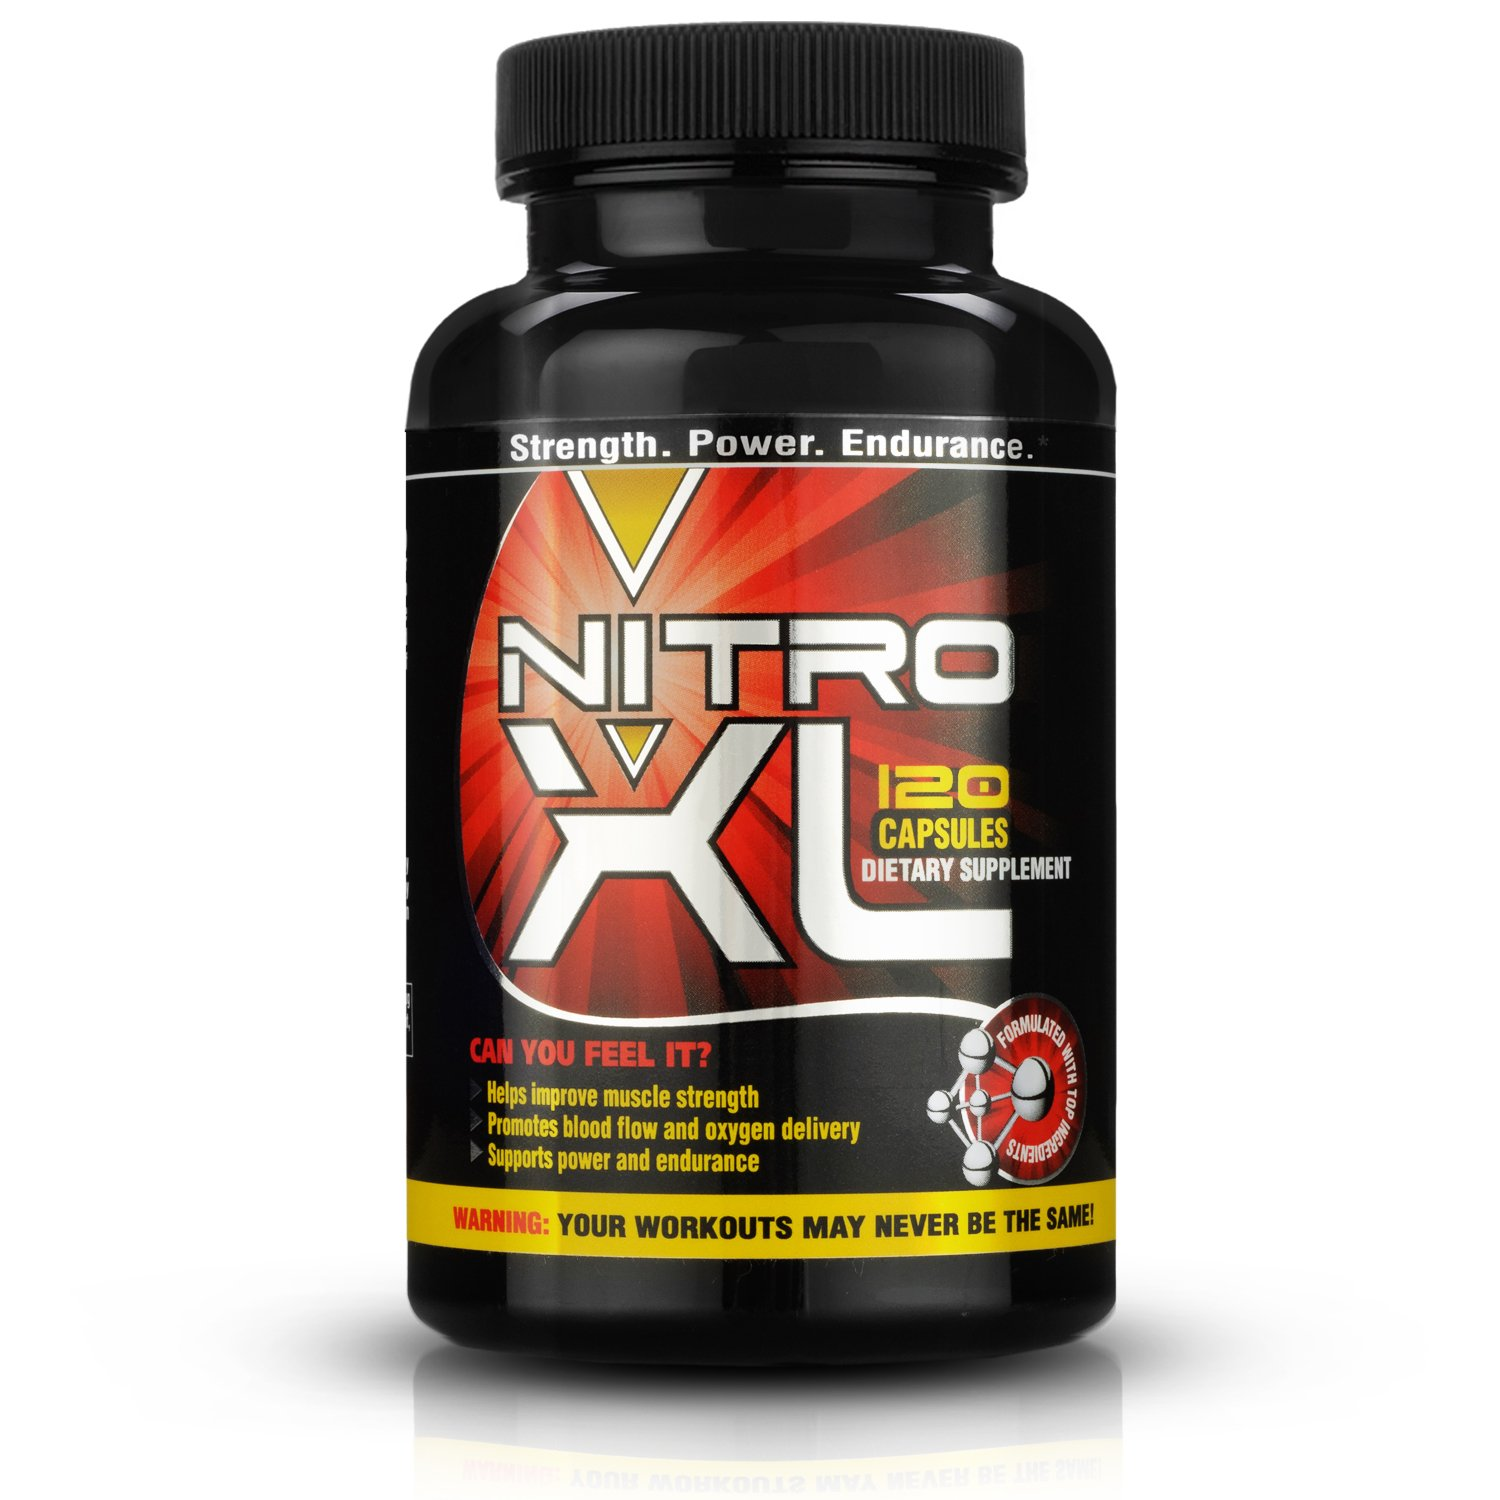 Nitro XL | Nitric Oxide Bodybuilding Supplement - with L-Arginine | Build Muscle Mass - Get Ripped - Boost Performance - Increase Endurance & Stamina - Intensify Your Workout | 120 caps by Nitro XL